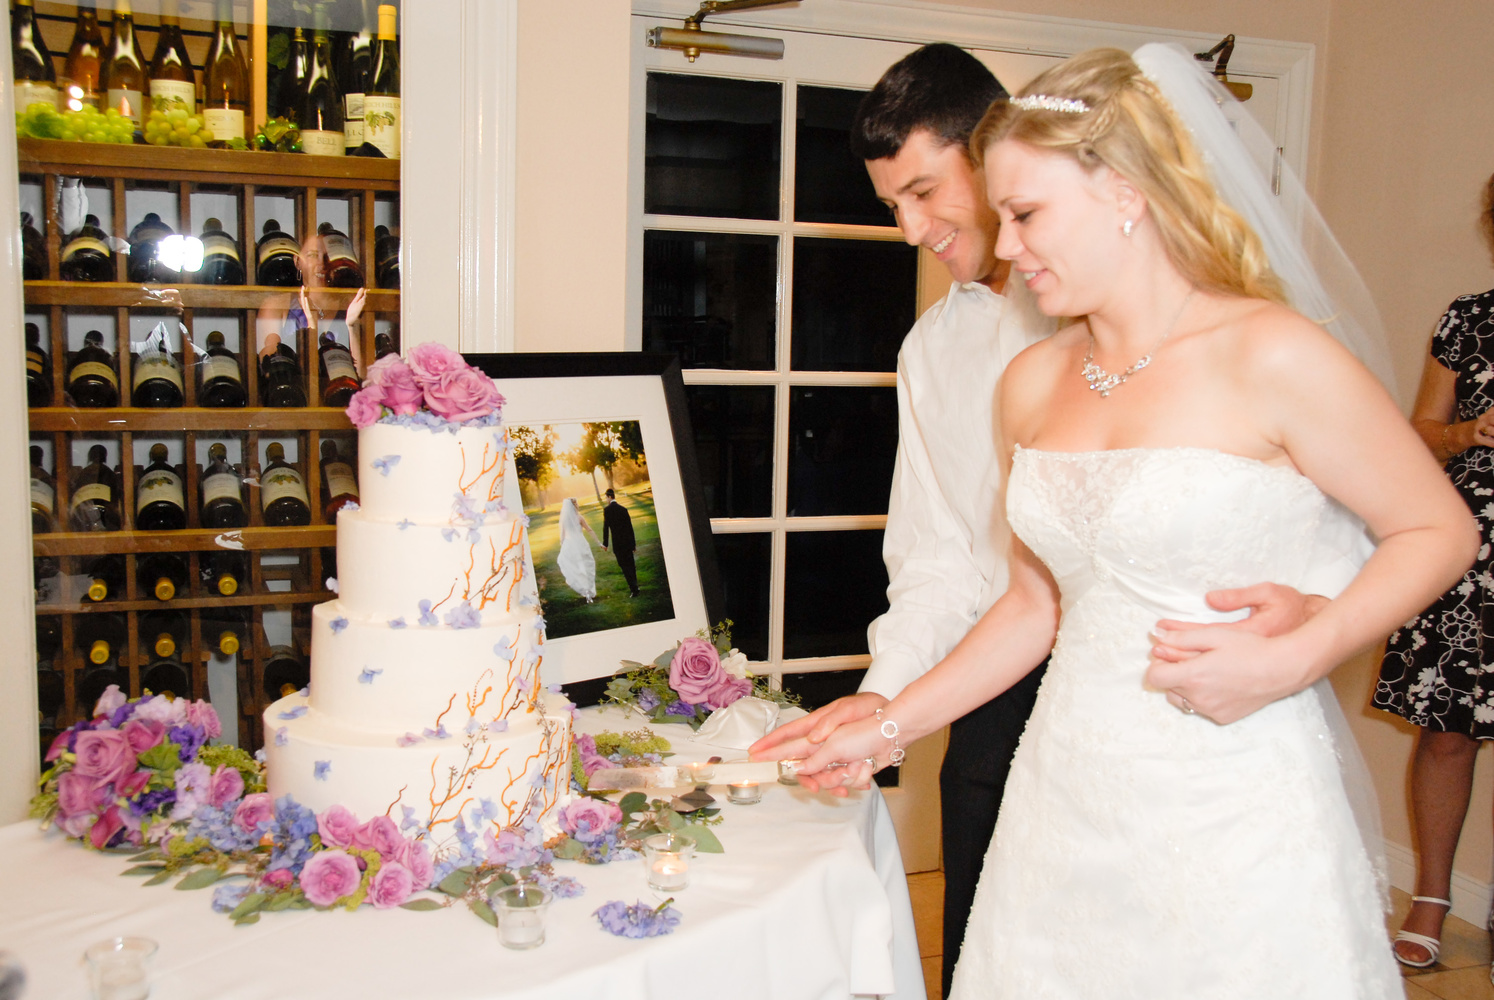 How to book more weddings with an inkjet printer by Bryan Linden